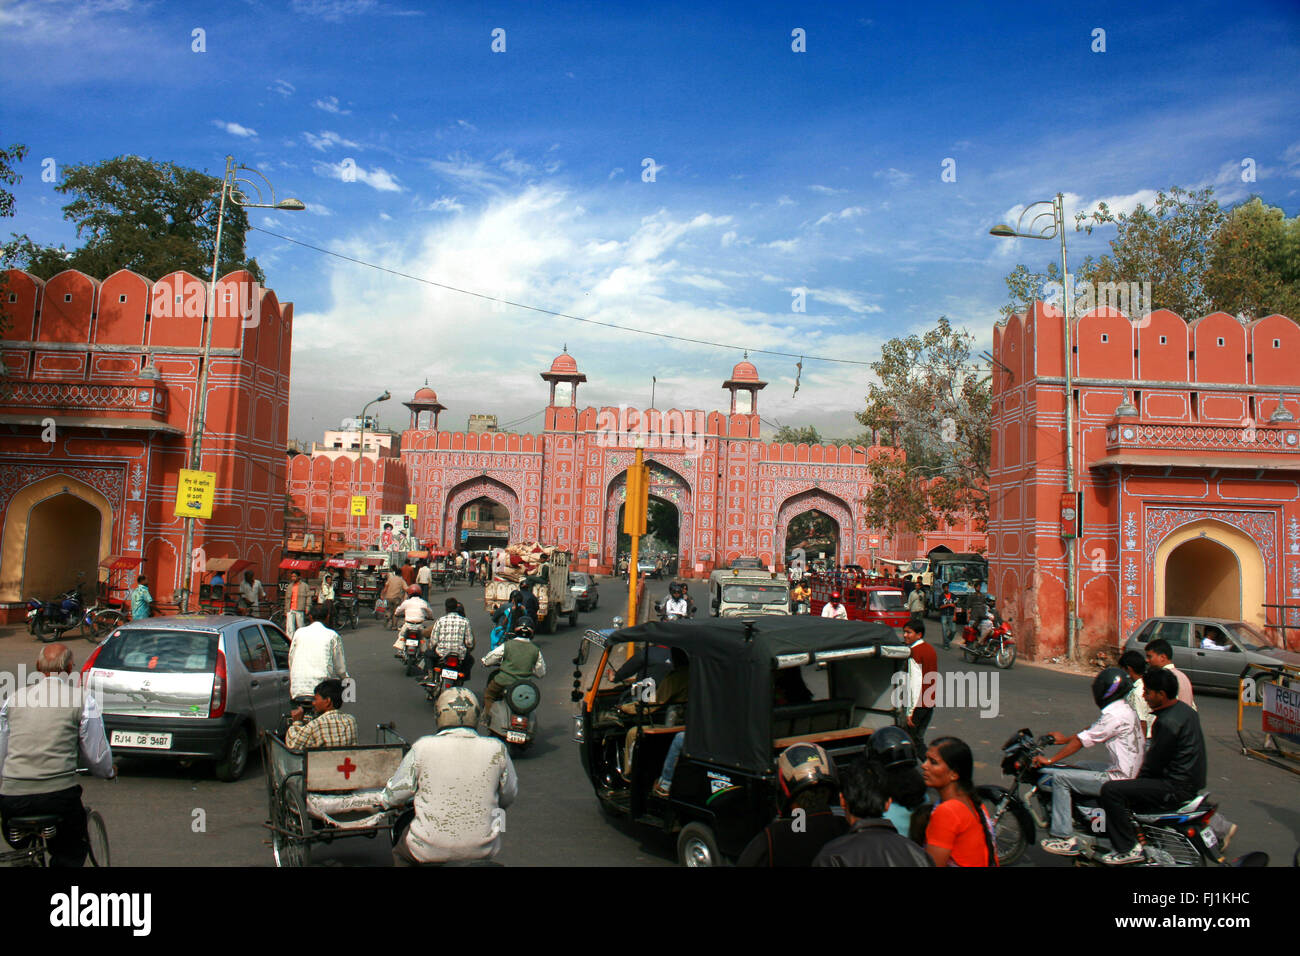 Chaotic traffic at the entrance of the old city of  Jaipur, India - Stock Image